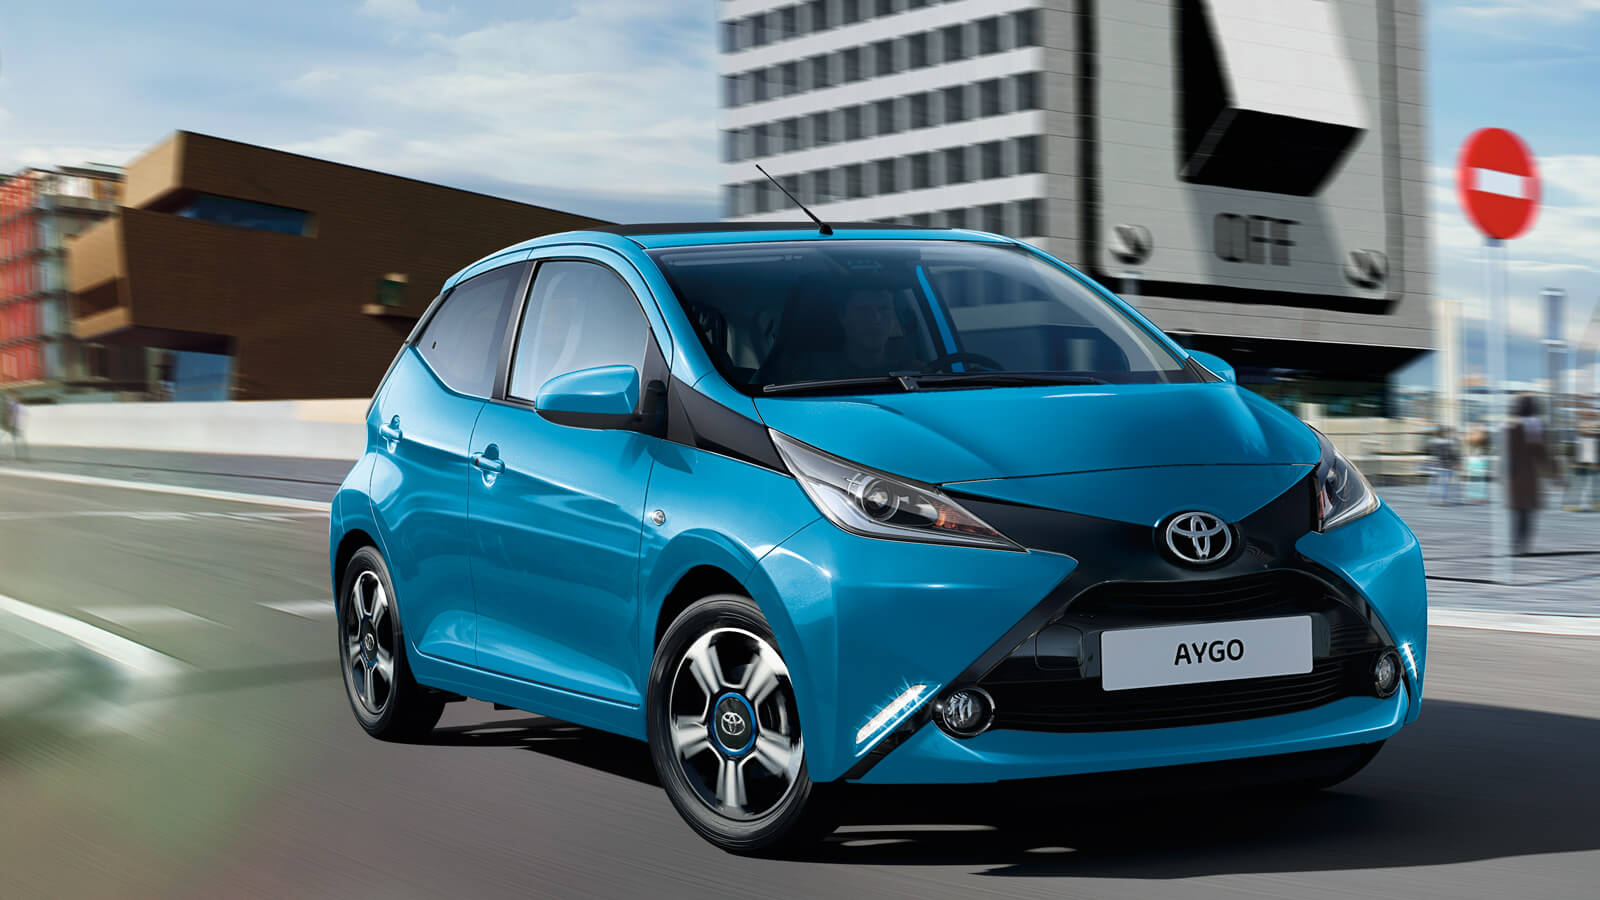 Wherever you go, AYGO